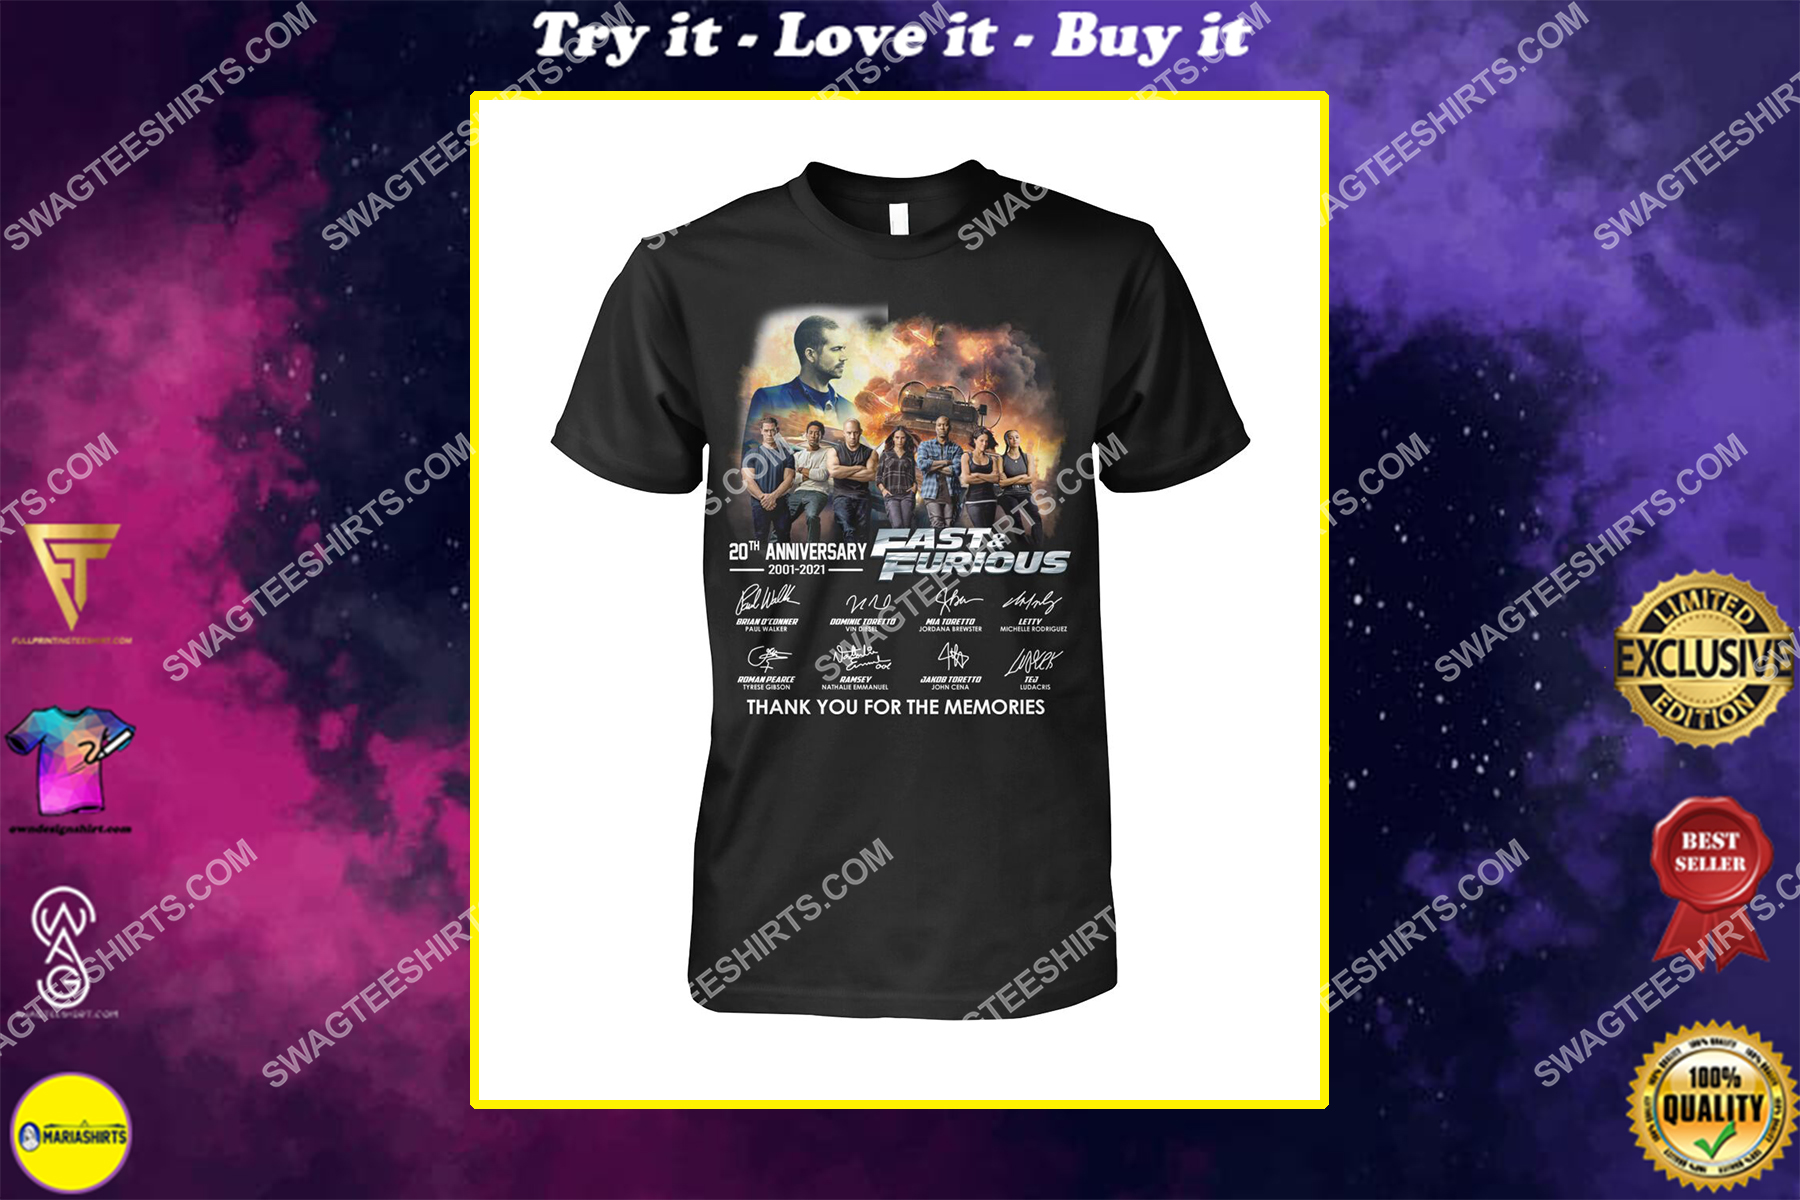 20th anniversary fast and furious thank you for memories shirt